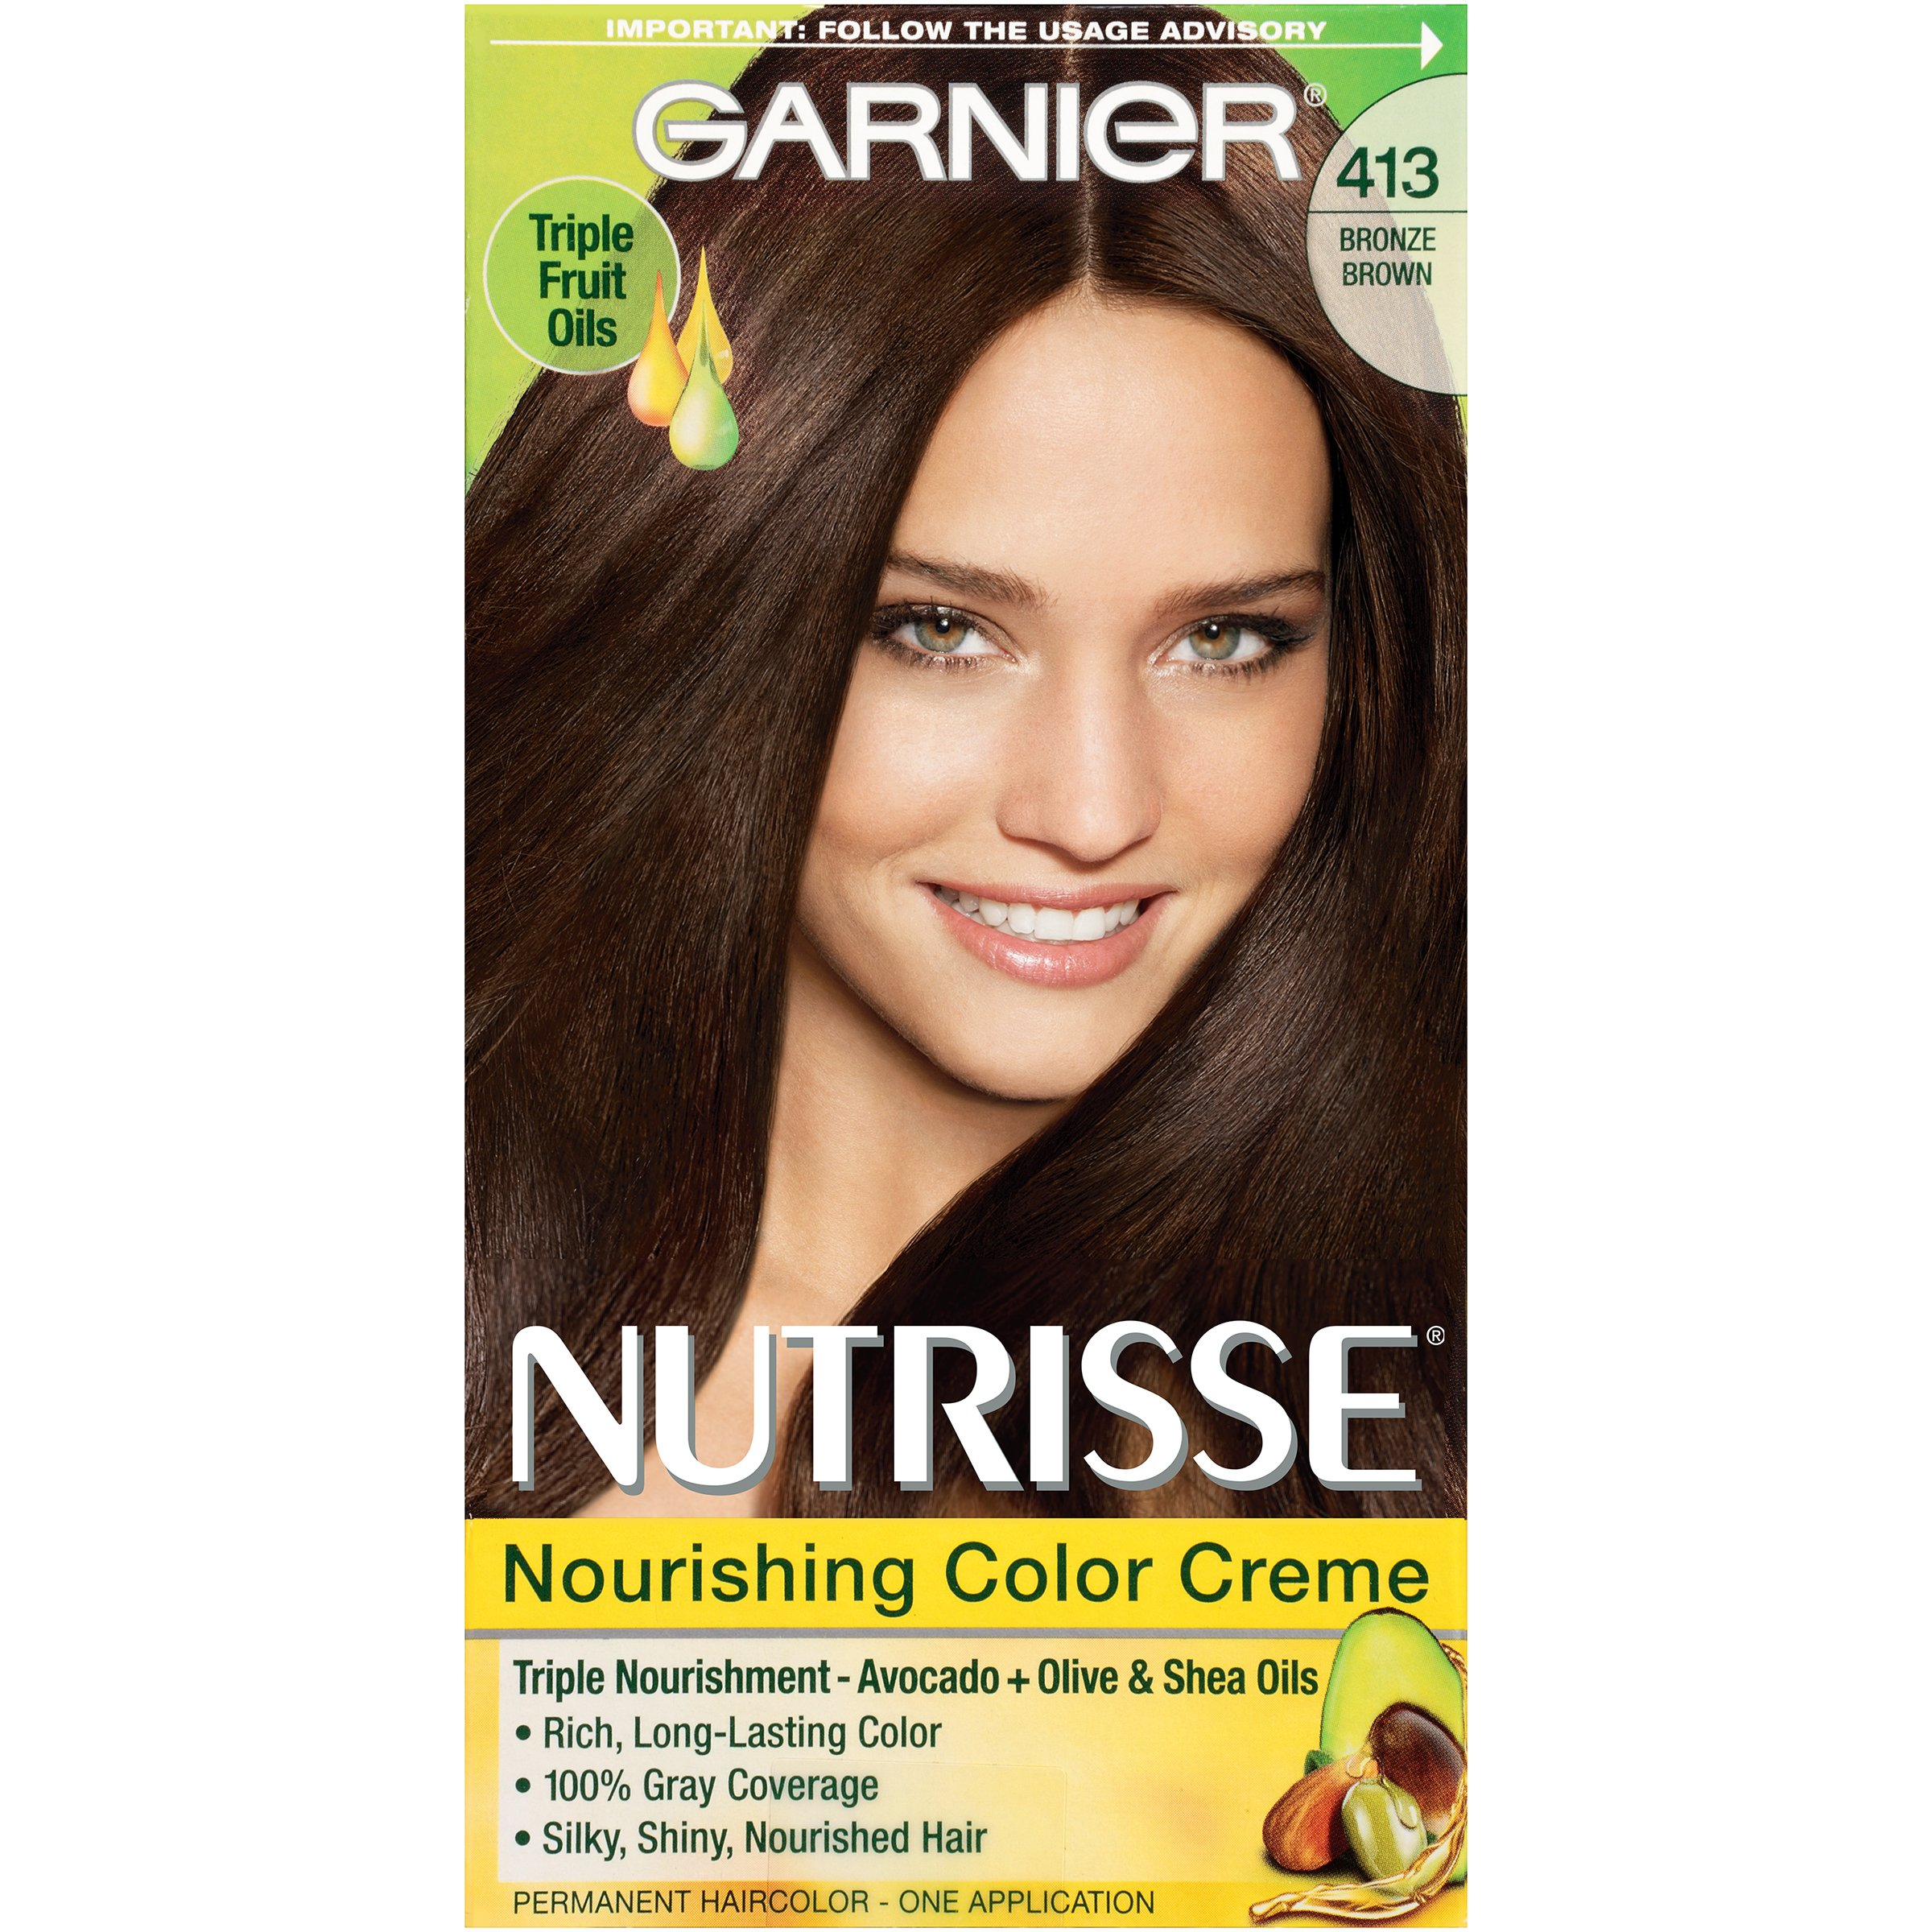 Amazon.com: Garnier Nutrisse Nourishing Hair Color Creme ...